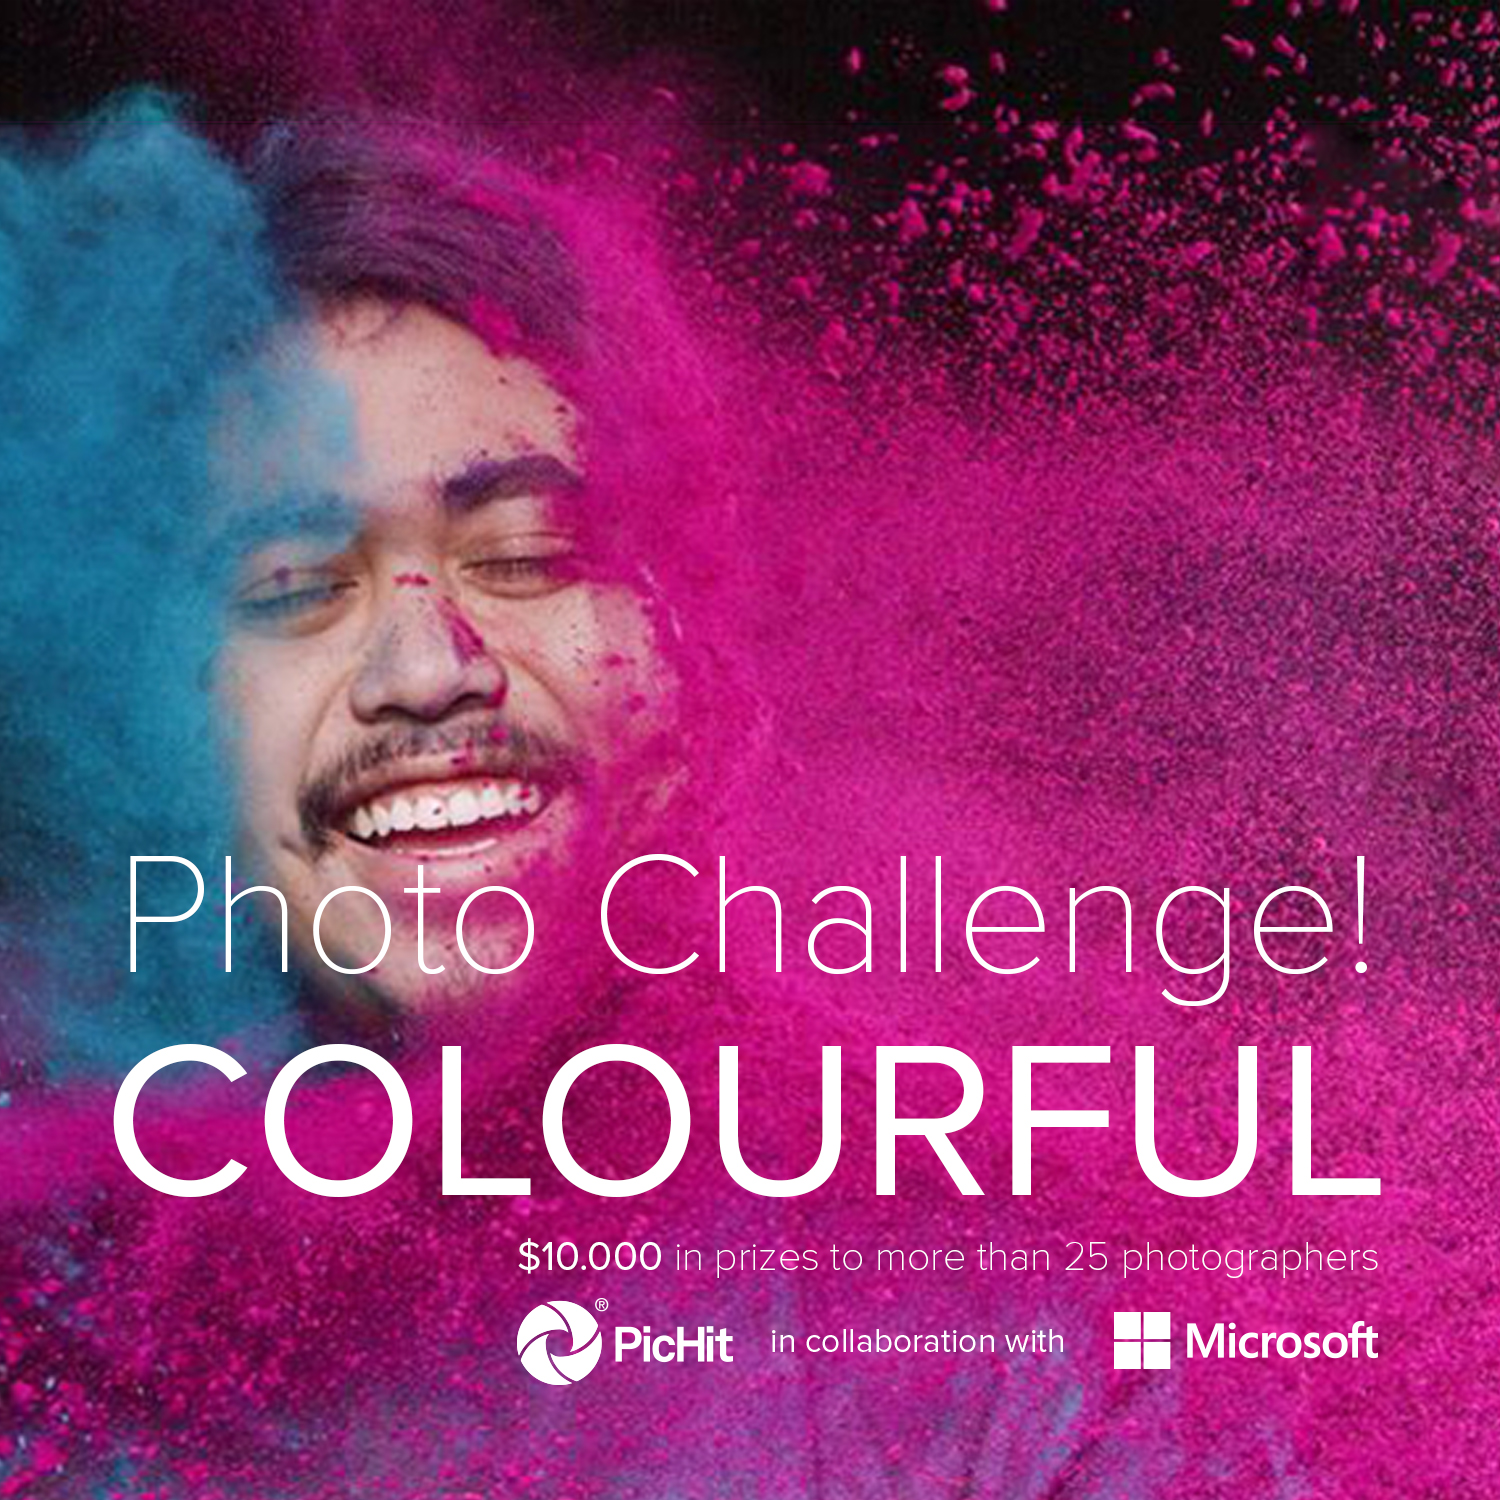 Colourful: PicHit & Microsoft Photo Contest - logo